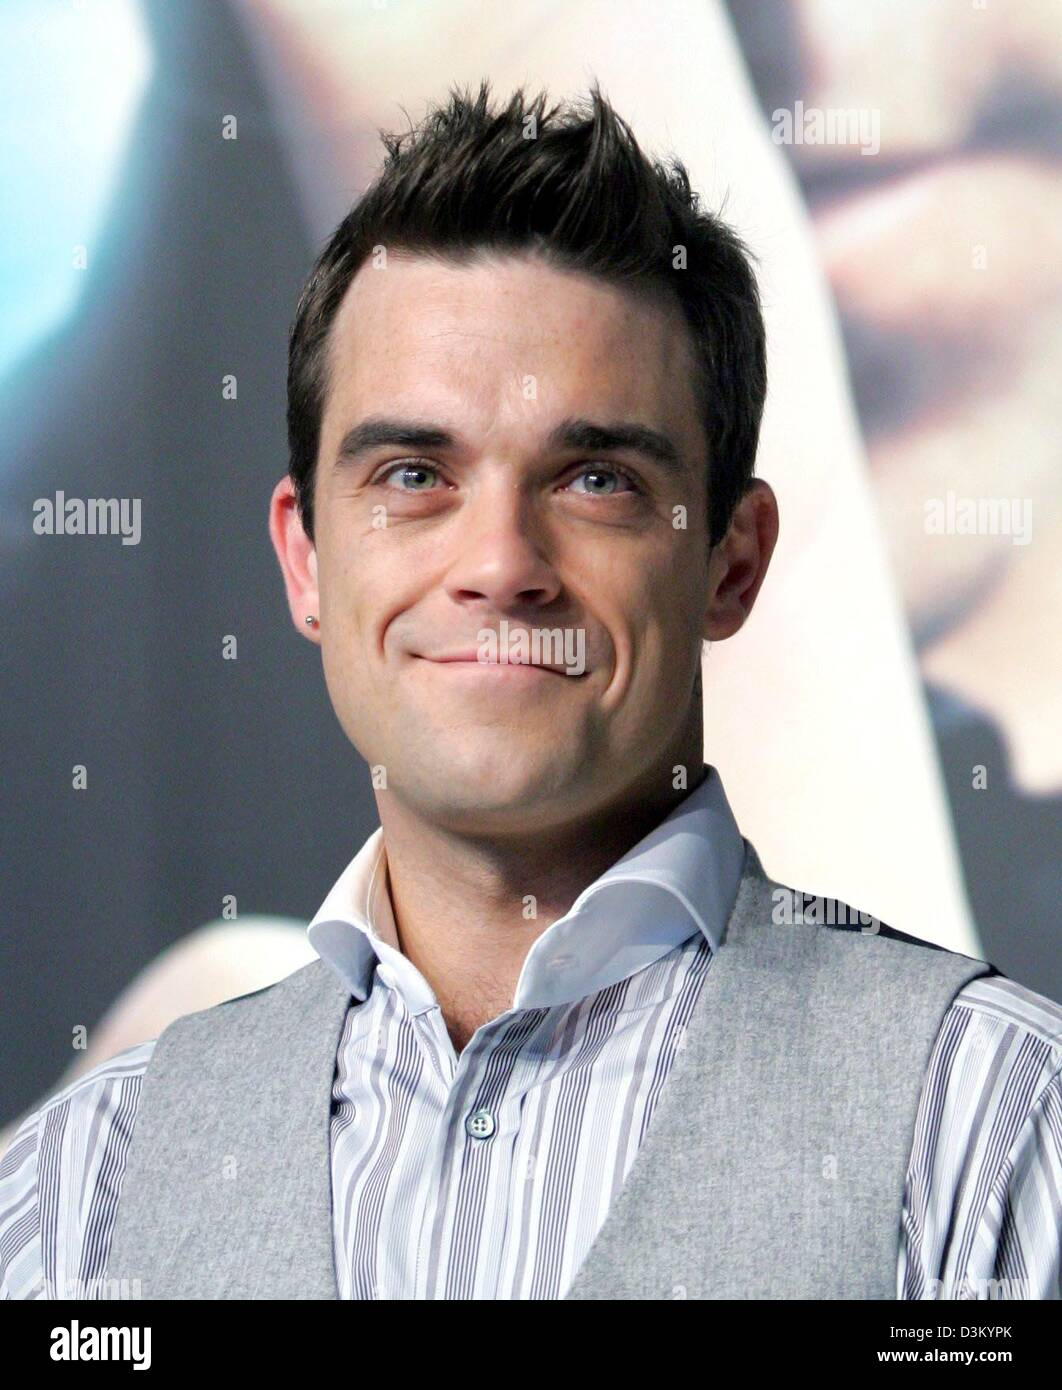 dpa) British pop singer Robbie Williams poses during a